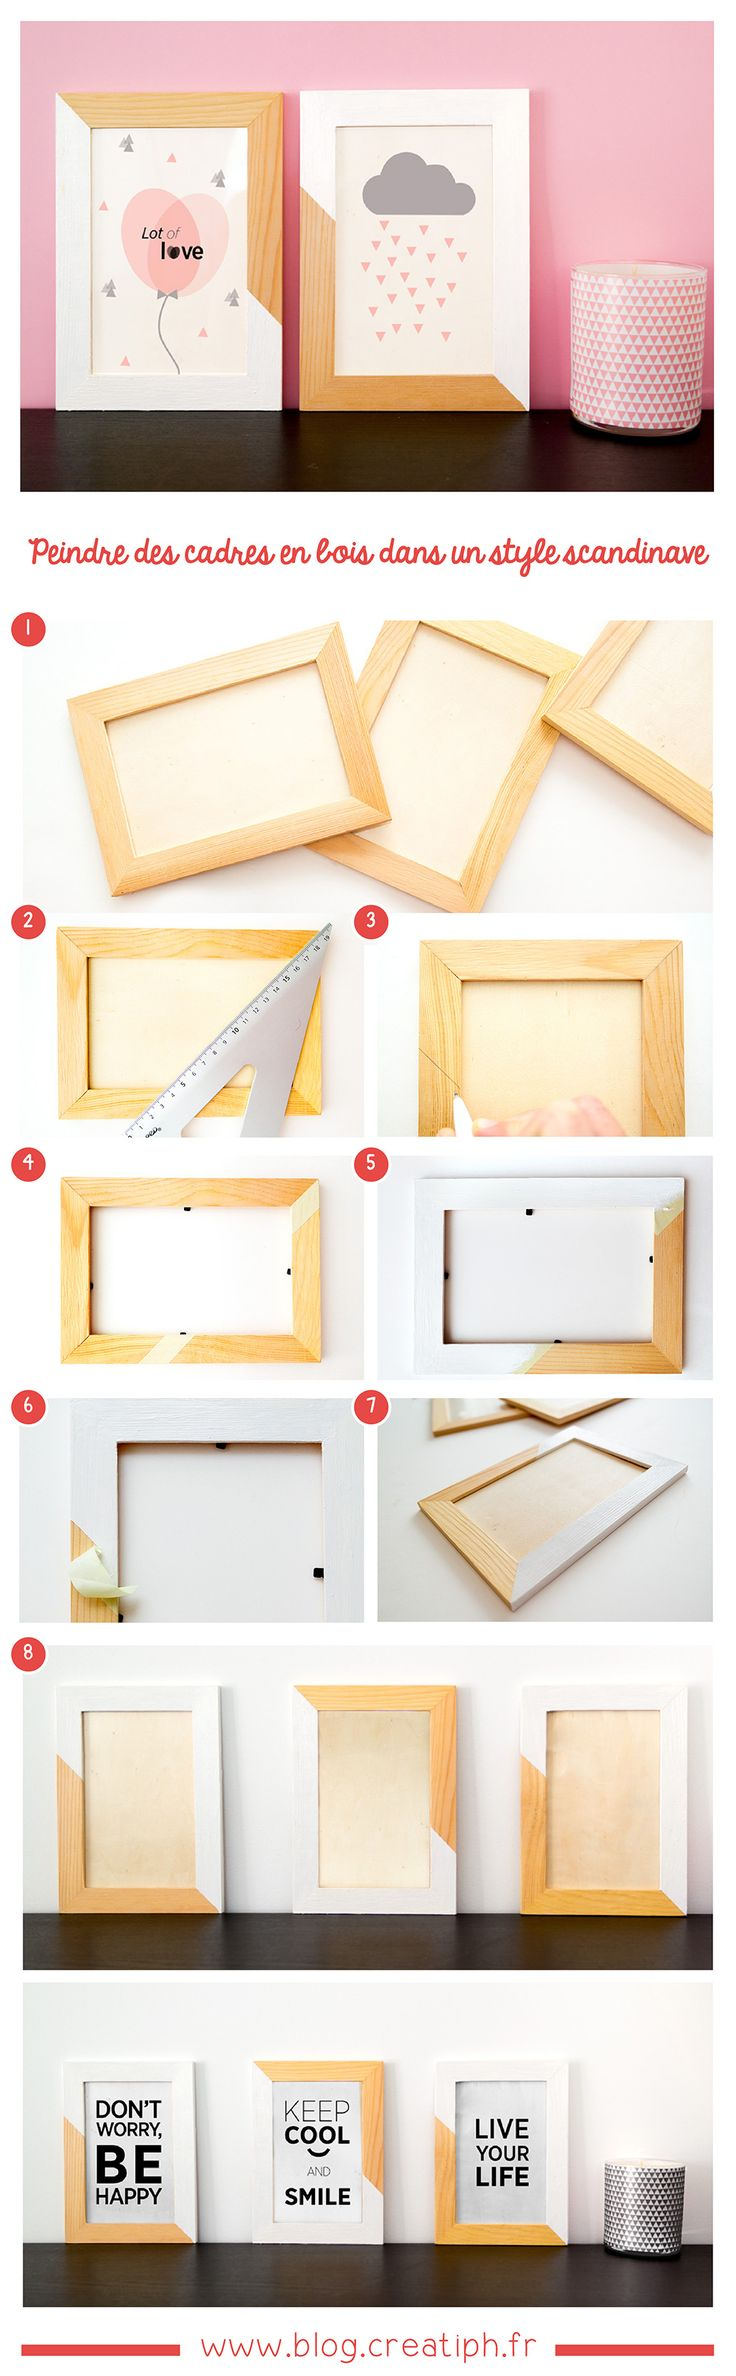 les 25 meilleures id es de la cat gorie cadre photo diy sur pinterest bricolage de cadre. Black Bedroom Furniture Sets. Home Design Ideas